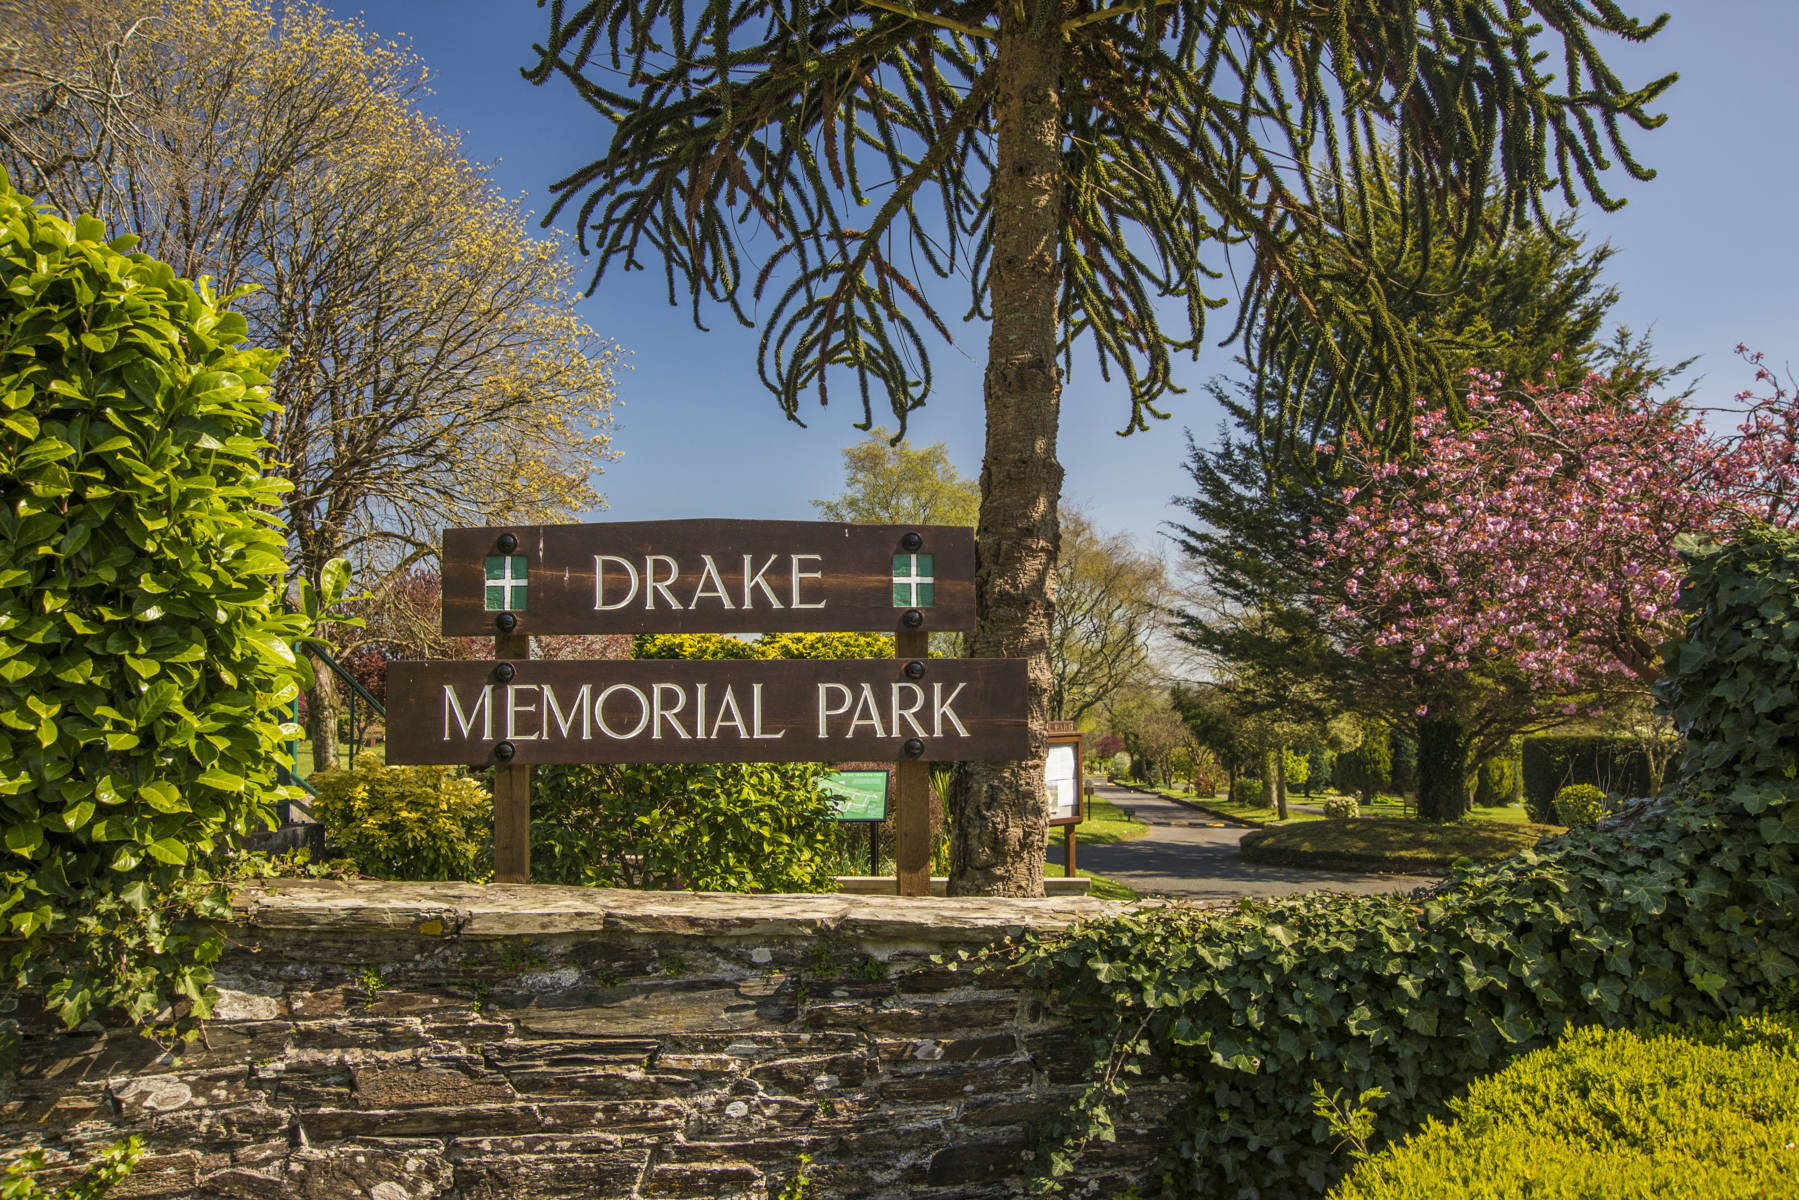 https://drakememorialpark.co.uk/upload/gallery_image/fe8504270319114640.JPG